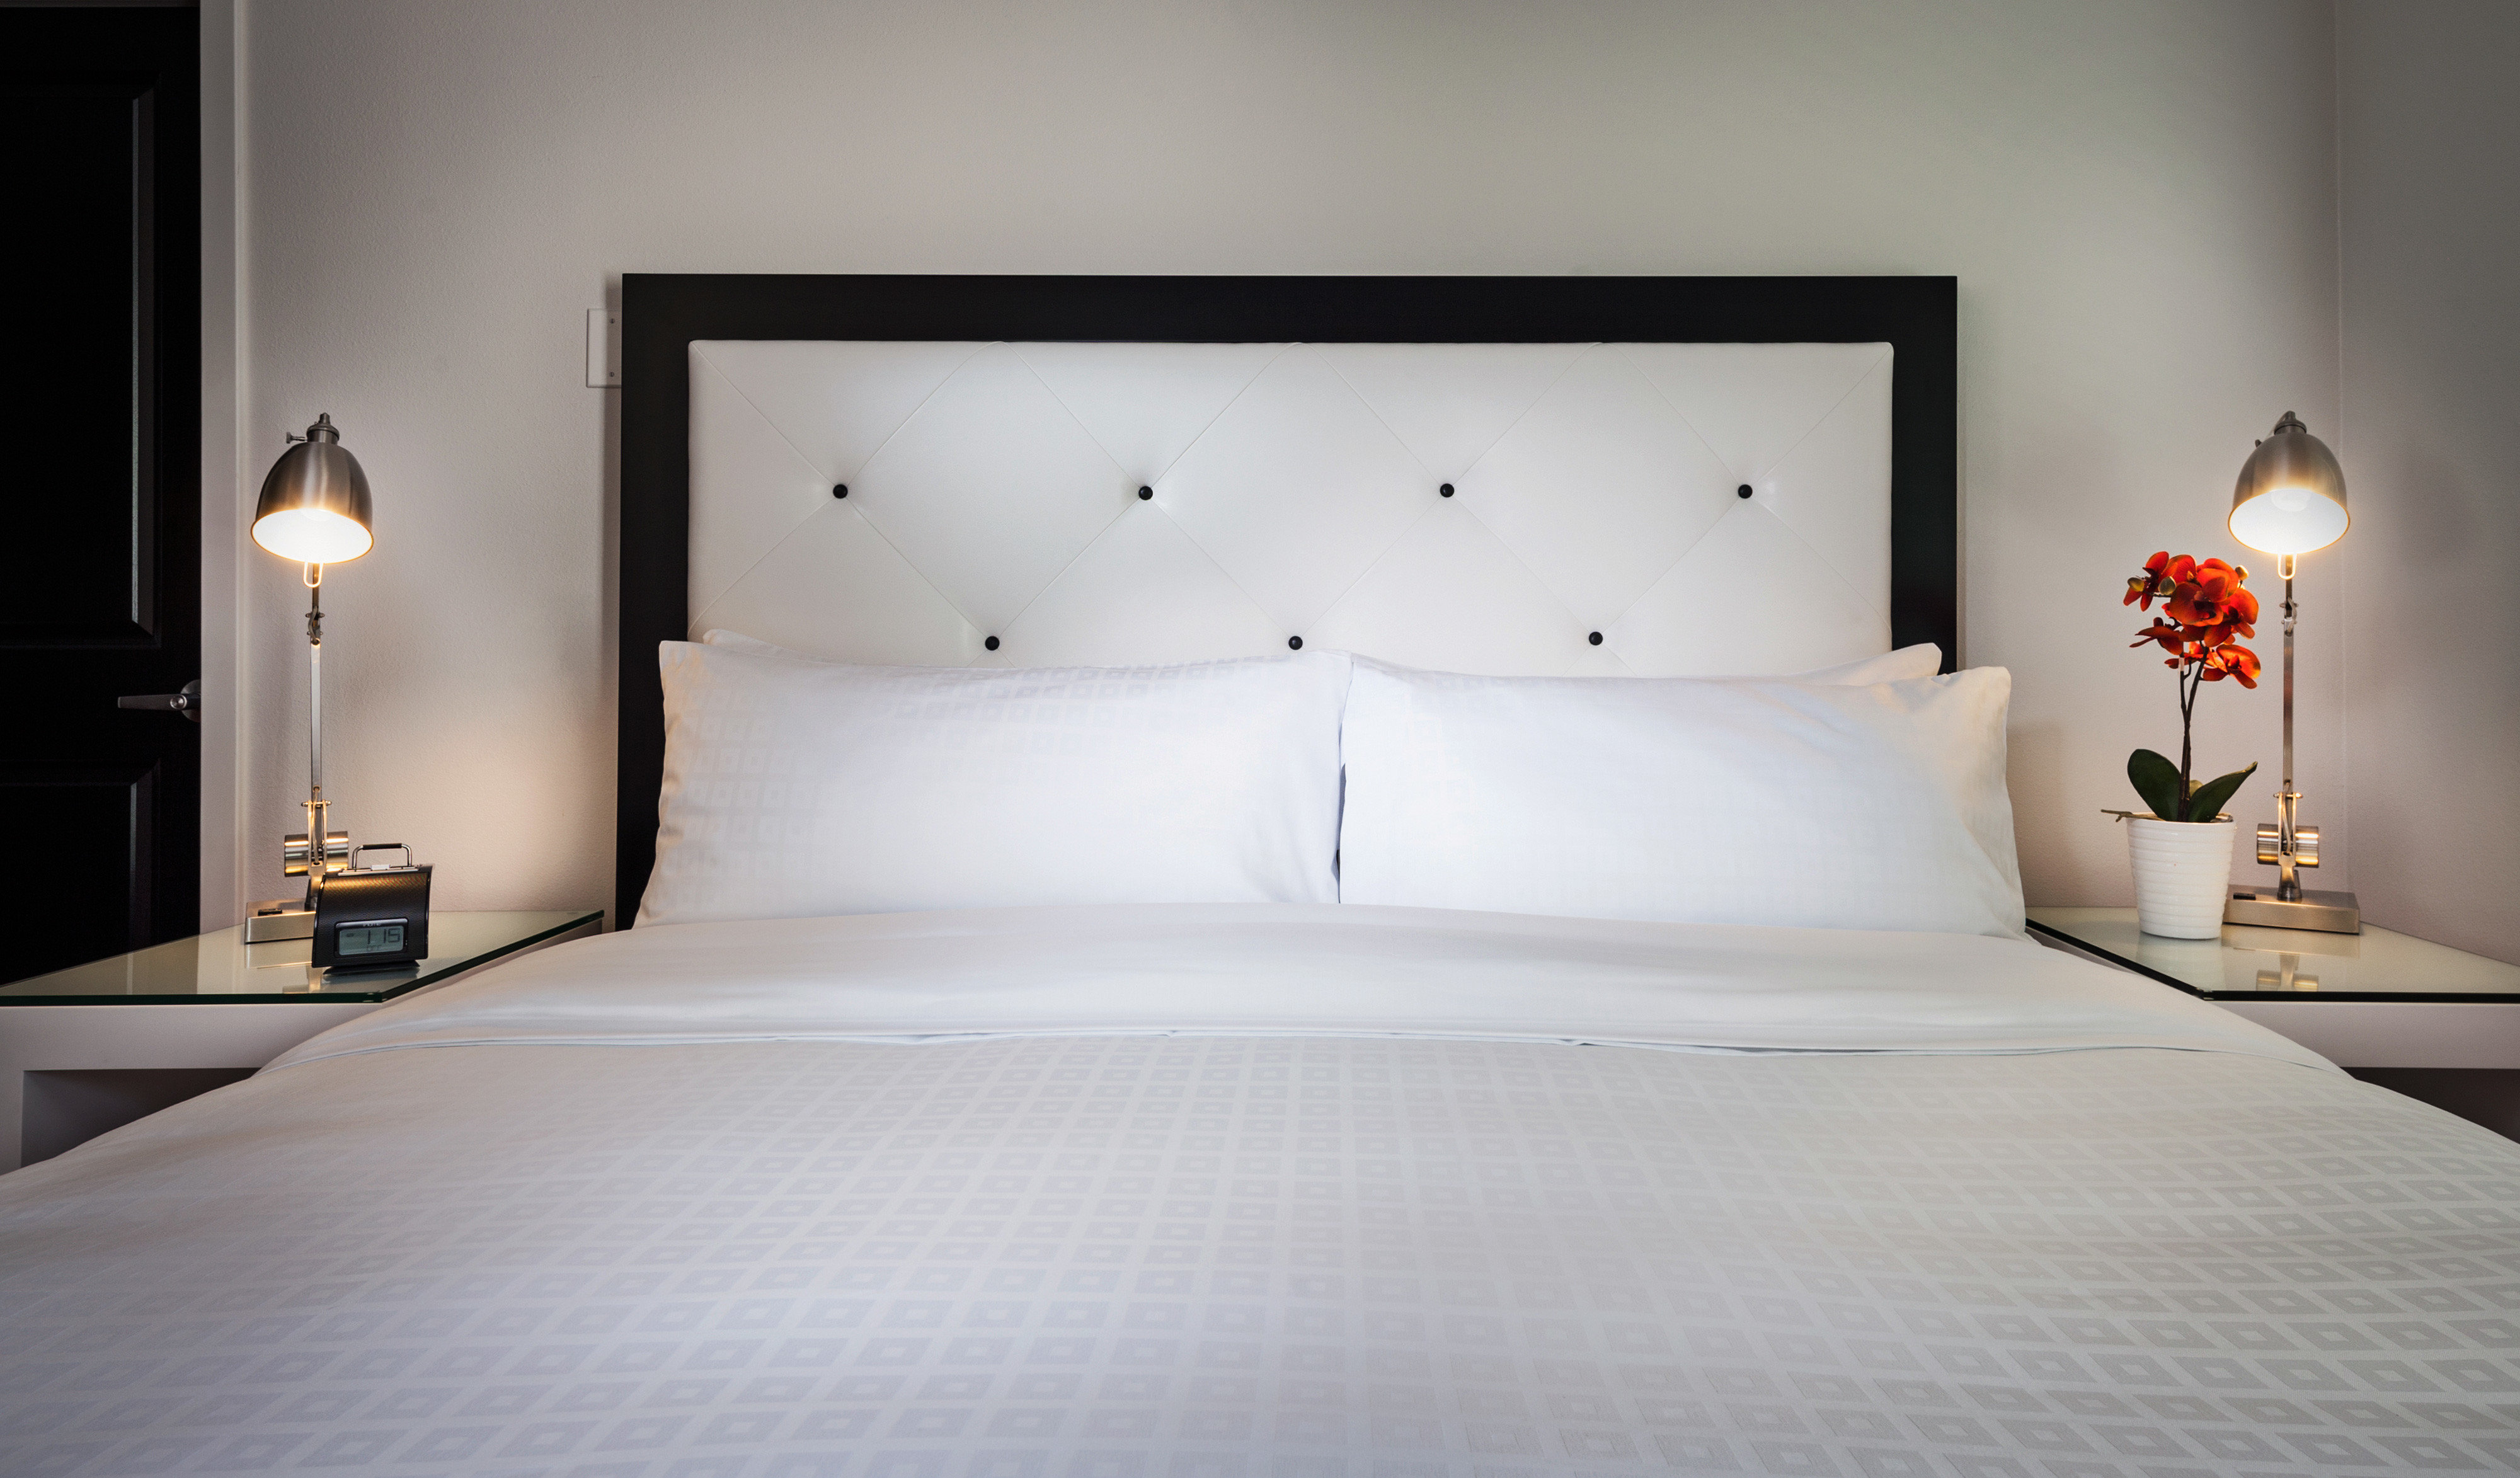 Bedroom white pillow Suite bed sheet bed frame lamp